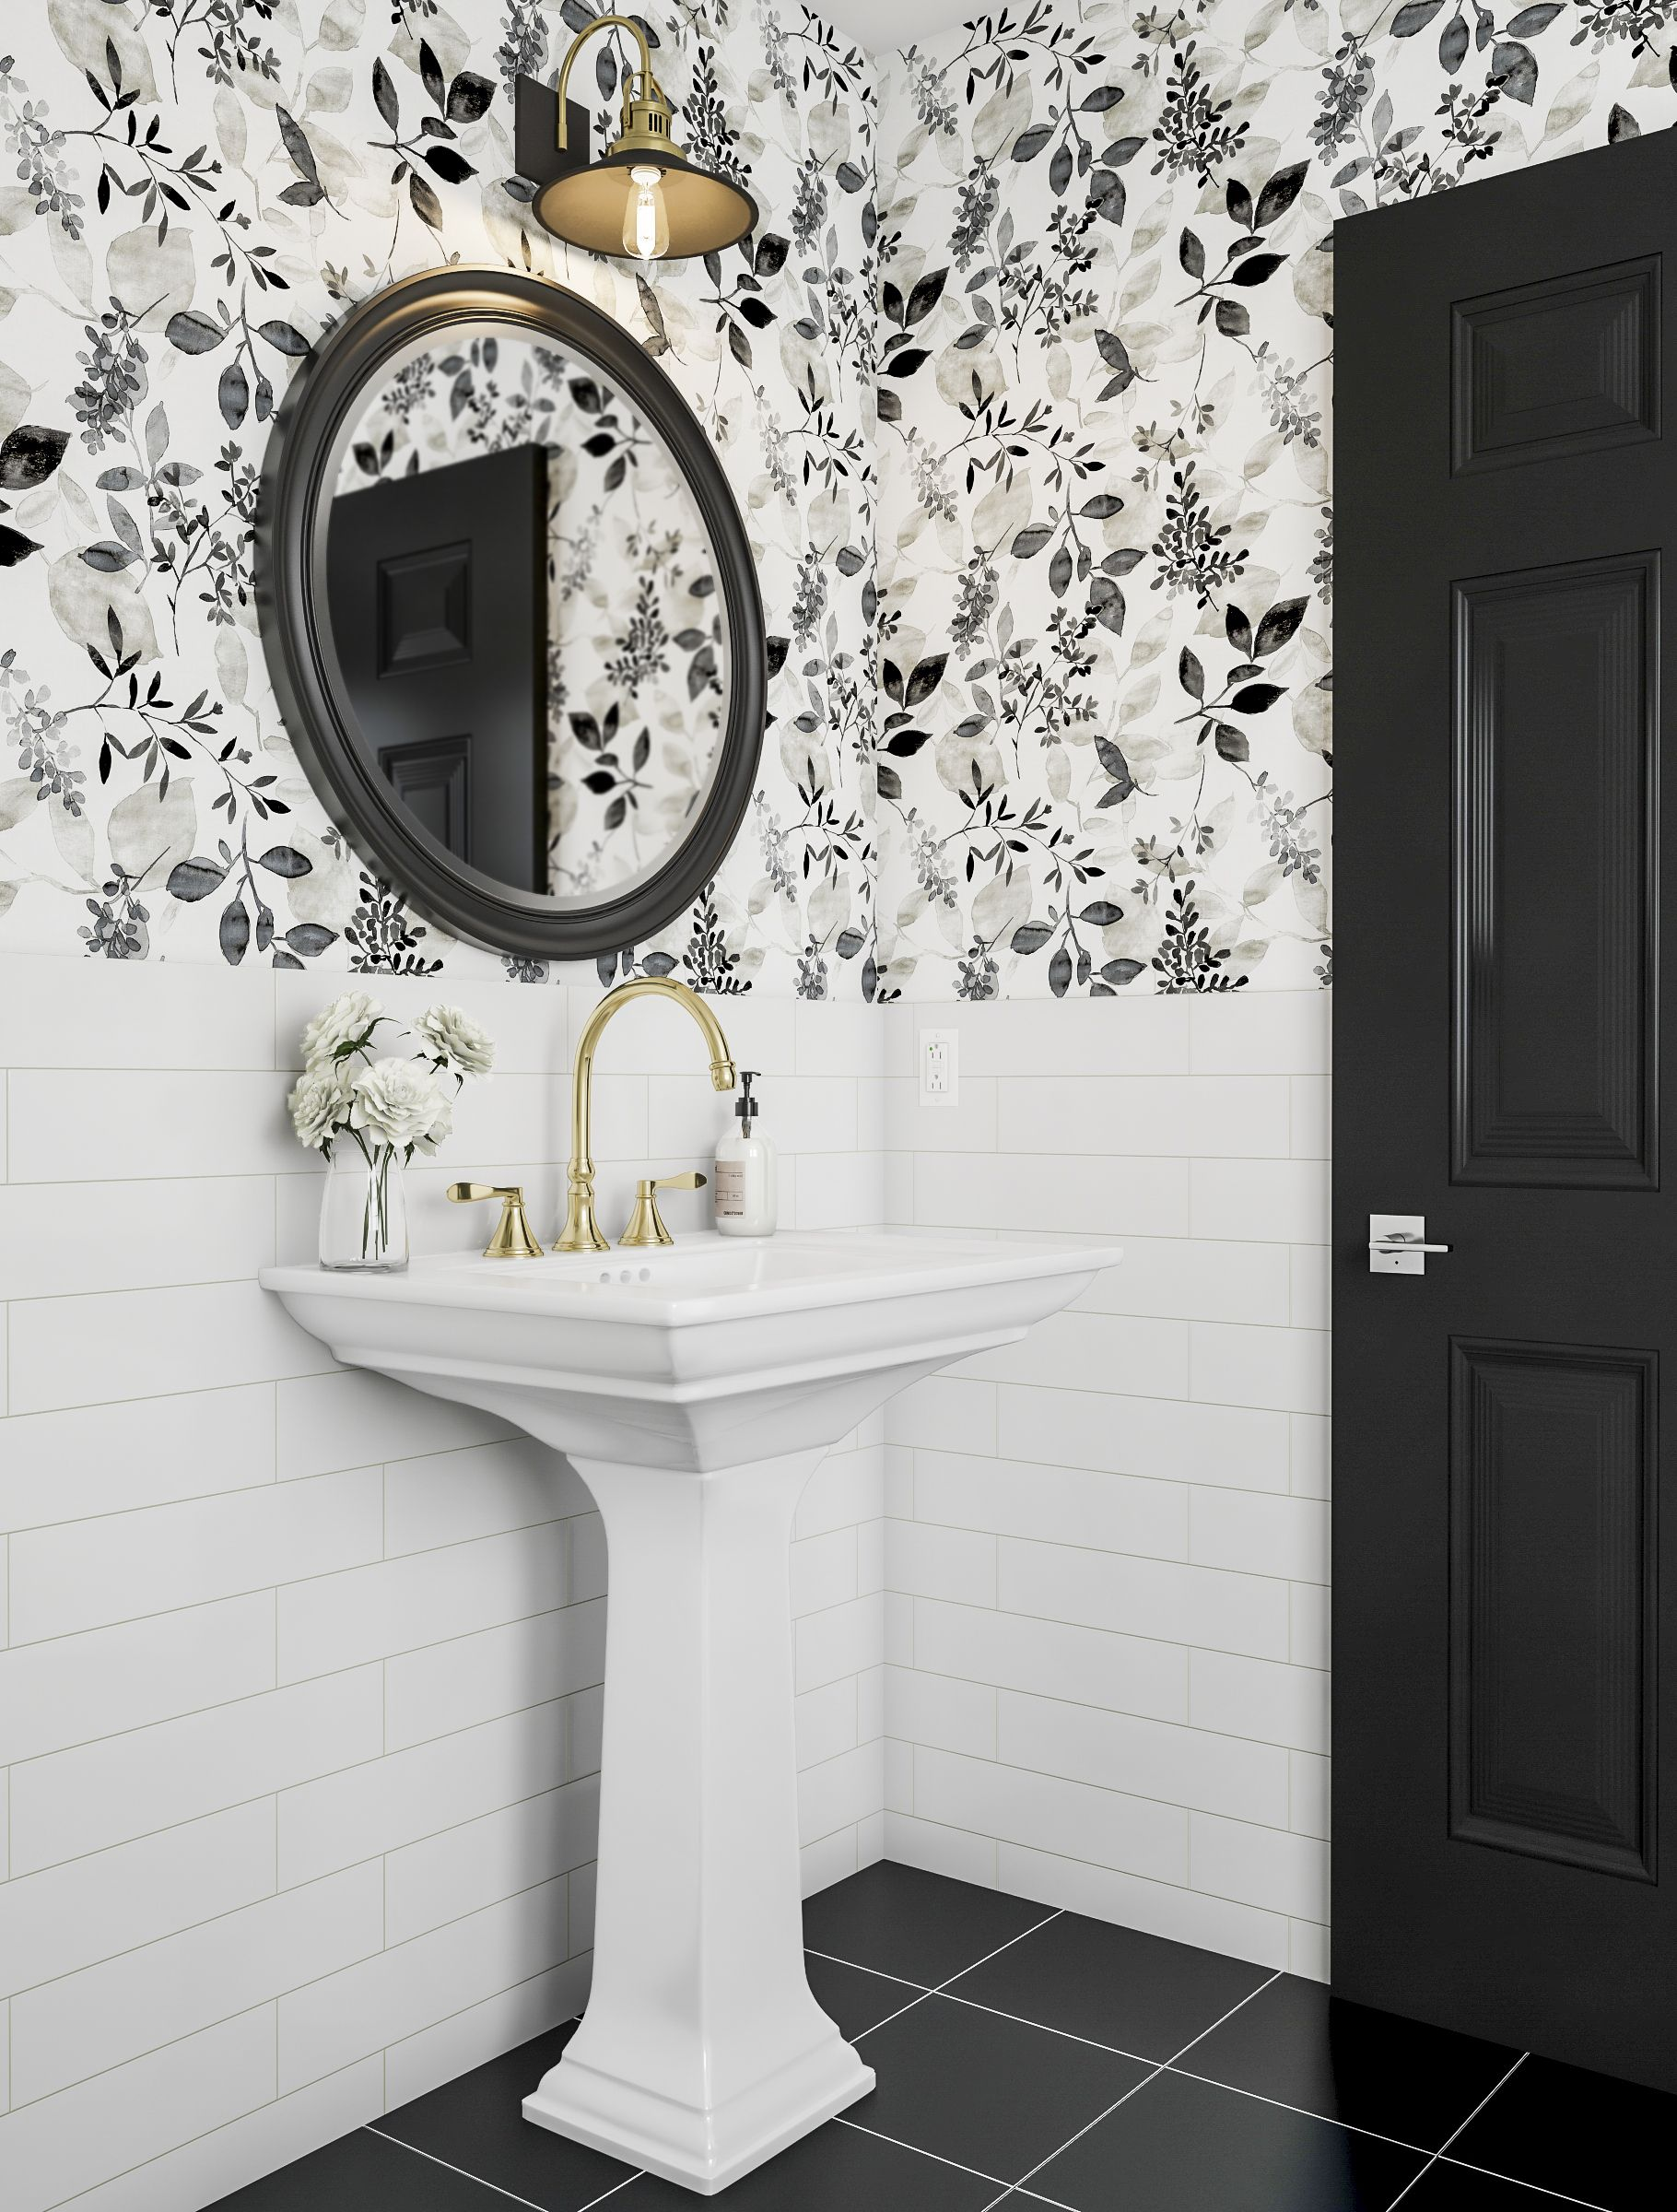 Modern Bathroom In Black And White Bathroom Wallpaper Trends Bathroom Design Black Bathroom Wallpaper